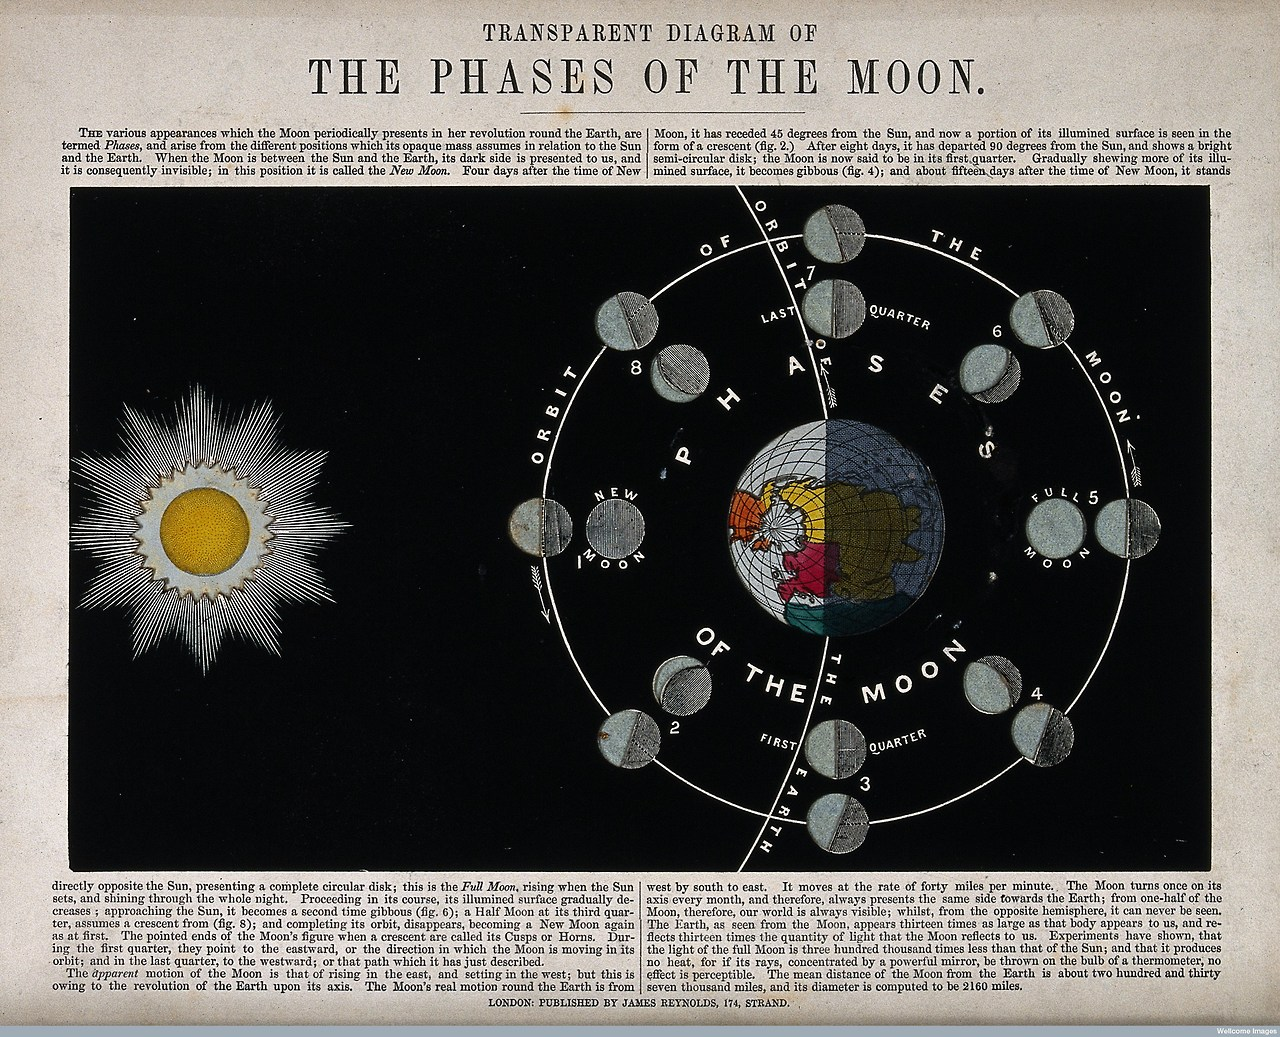 V0025021 Astronomy: a translucent diagram of the phases of the Moon.